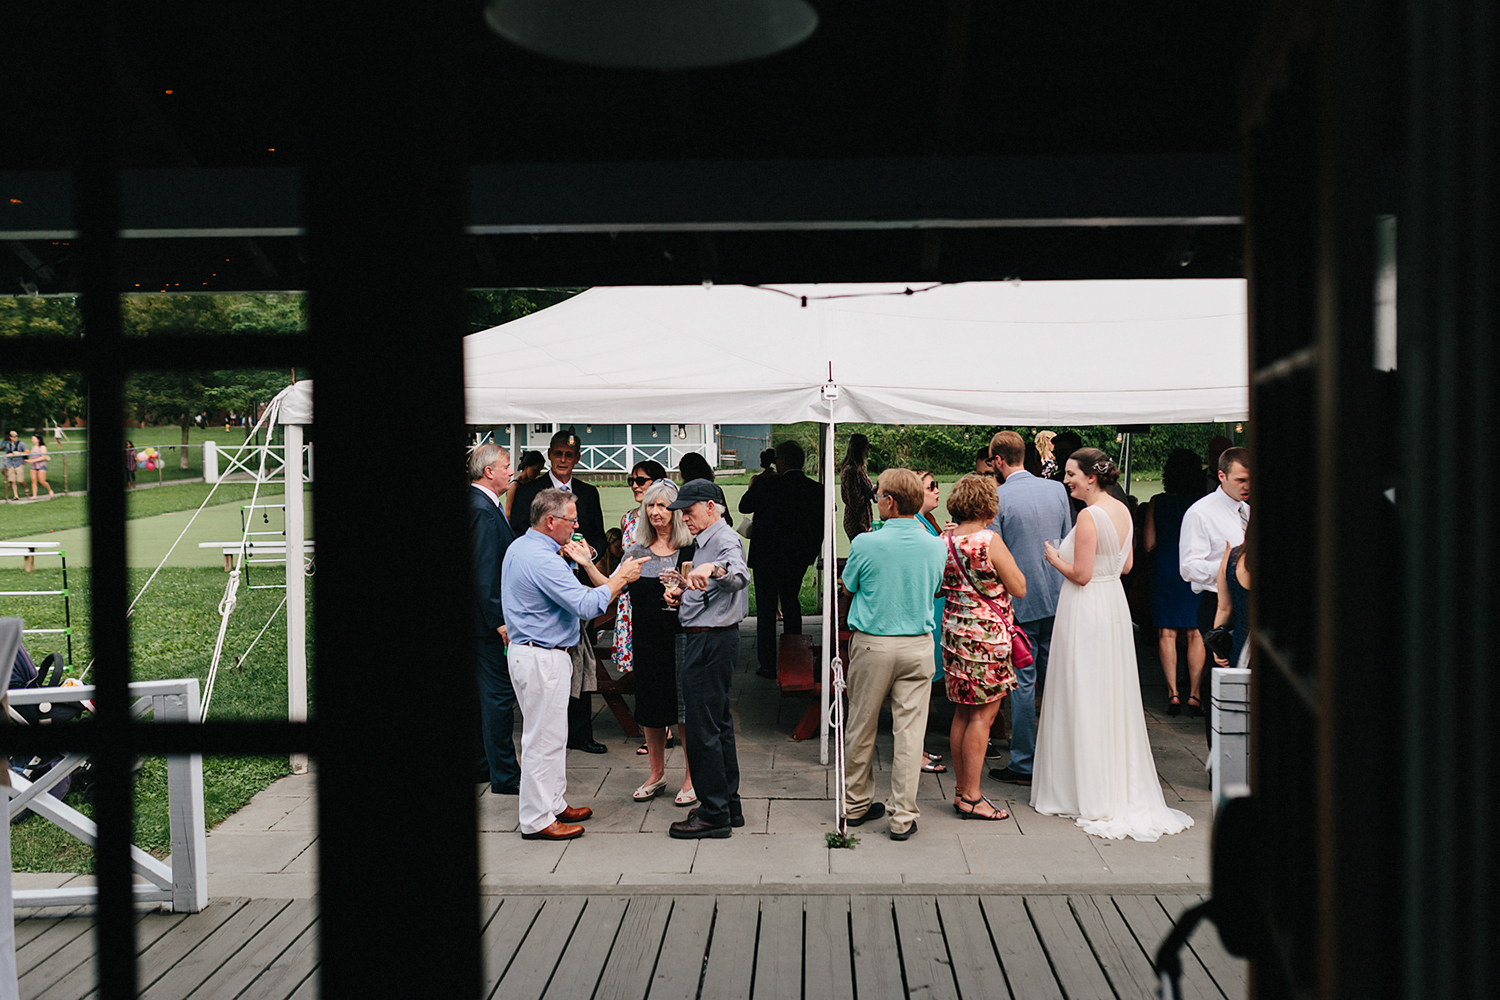 Toronto-Island-Wedding-Toronto-Best-Film-Wedding-Photographers-3b-photography-analog-photography-wards-island-clubhouse-junebug-weddings-vintage-venue-reception-cocktail-hour-candid-guests-mingling-artistic-creative.jpg